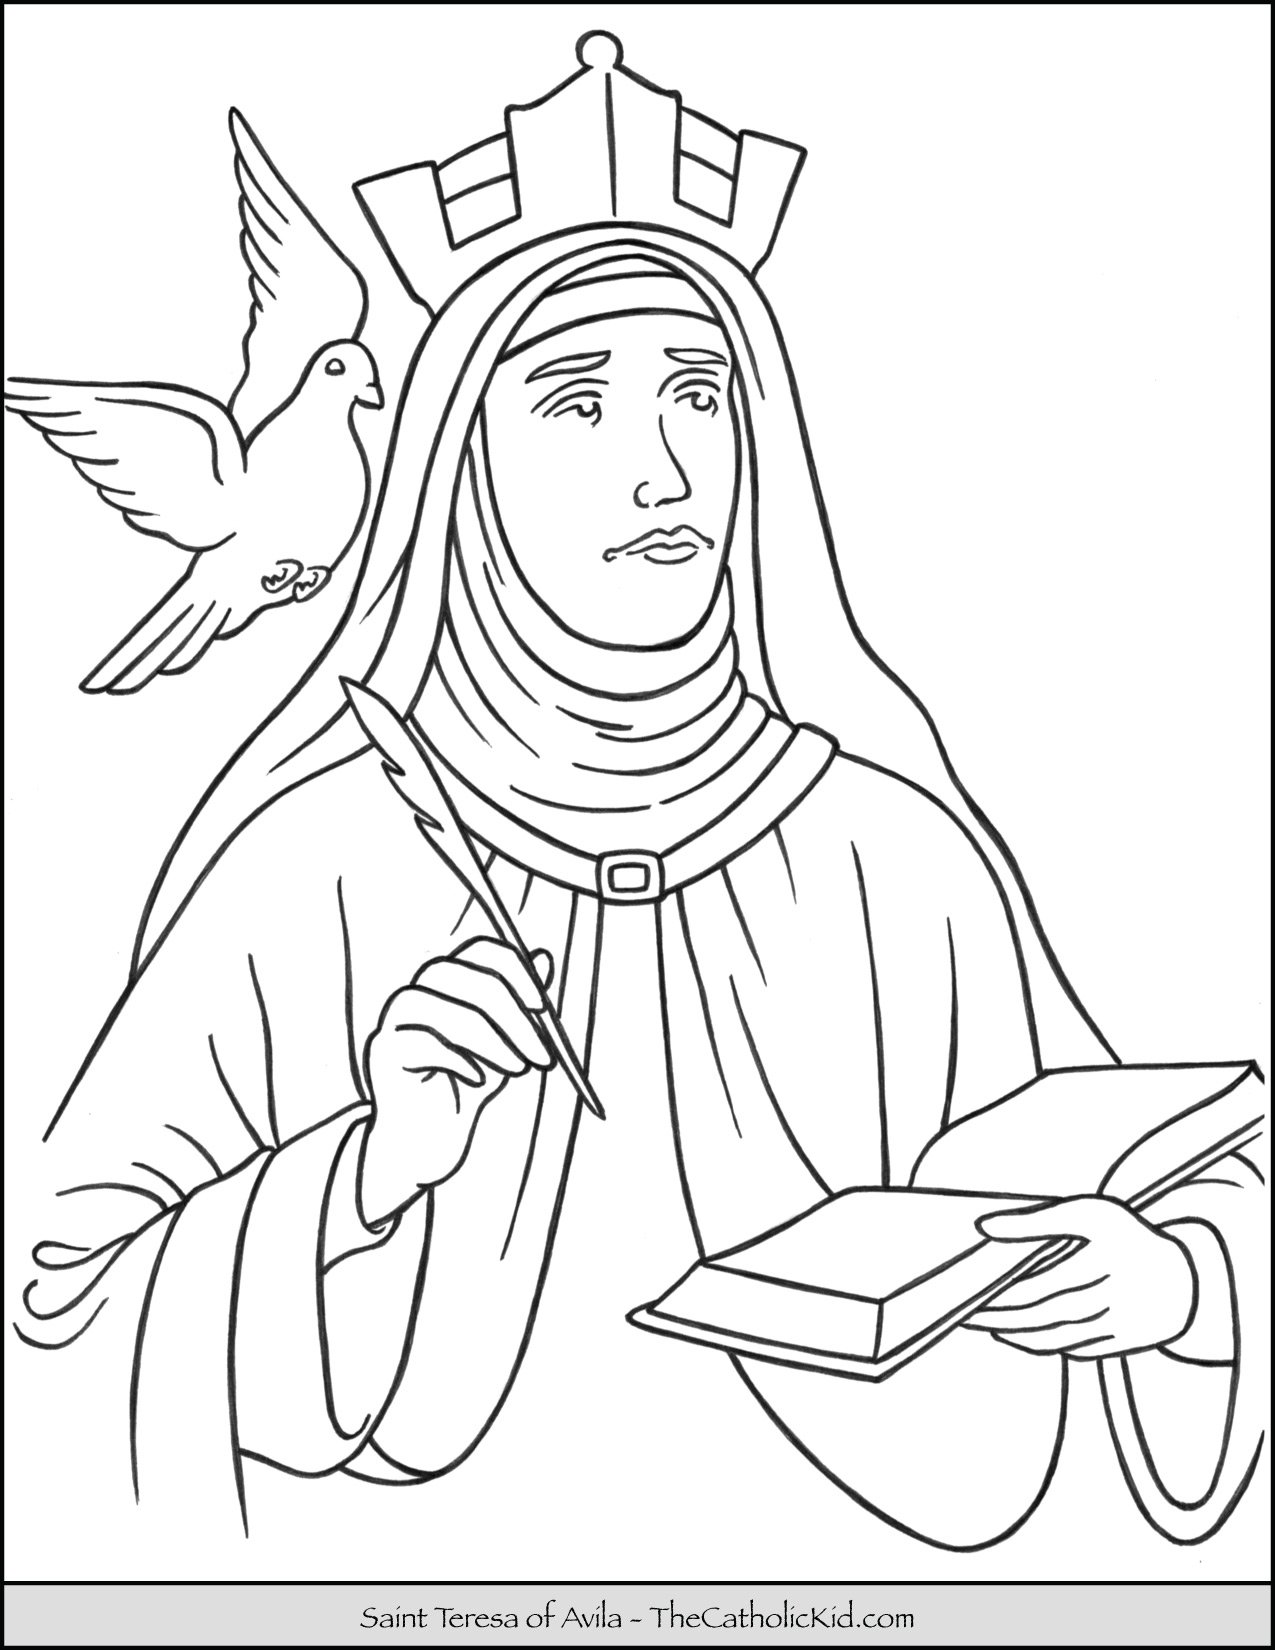 Saint Teresa of Avila Coloring Page